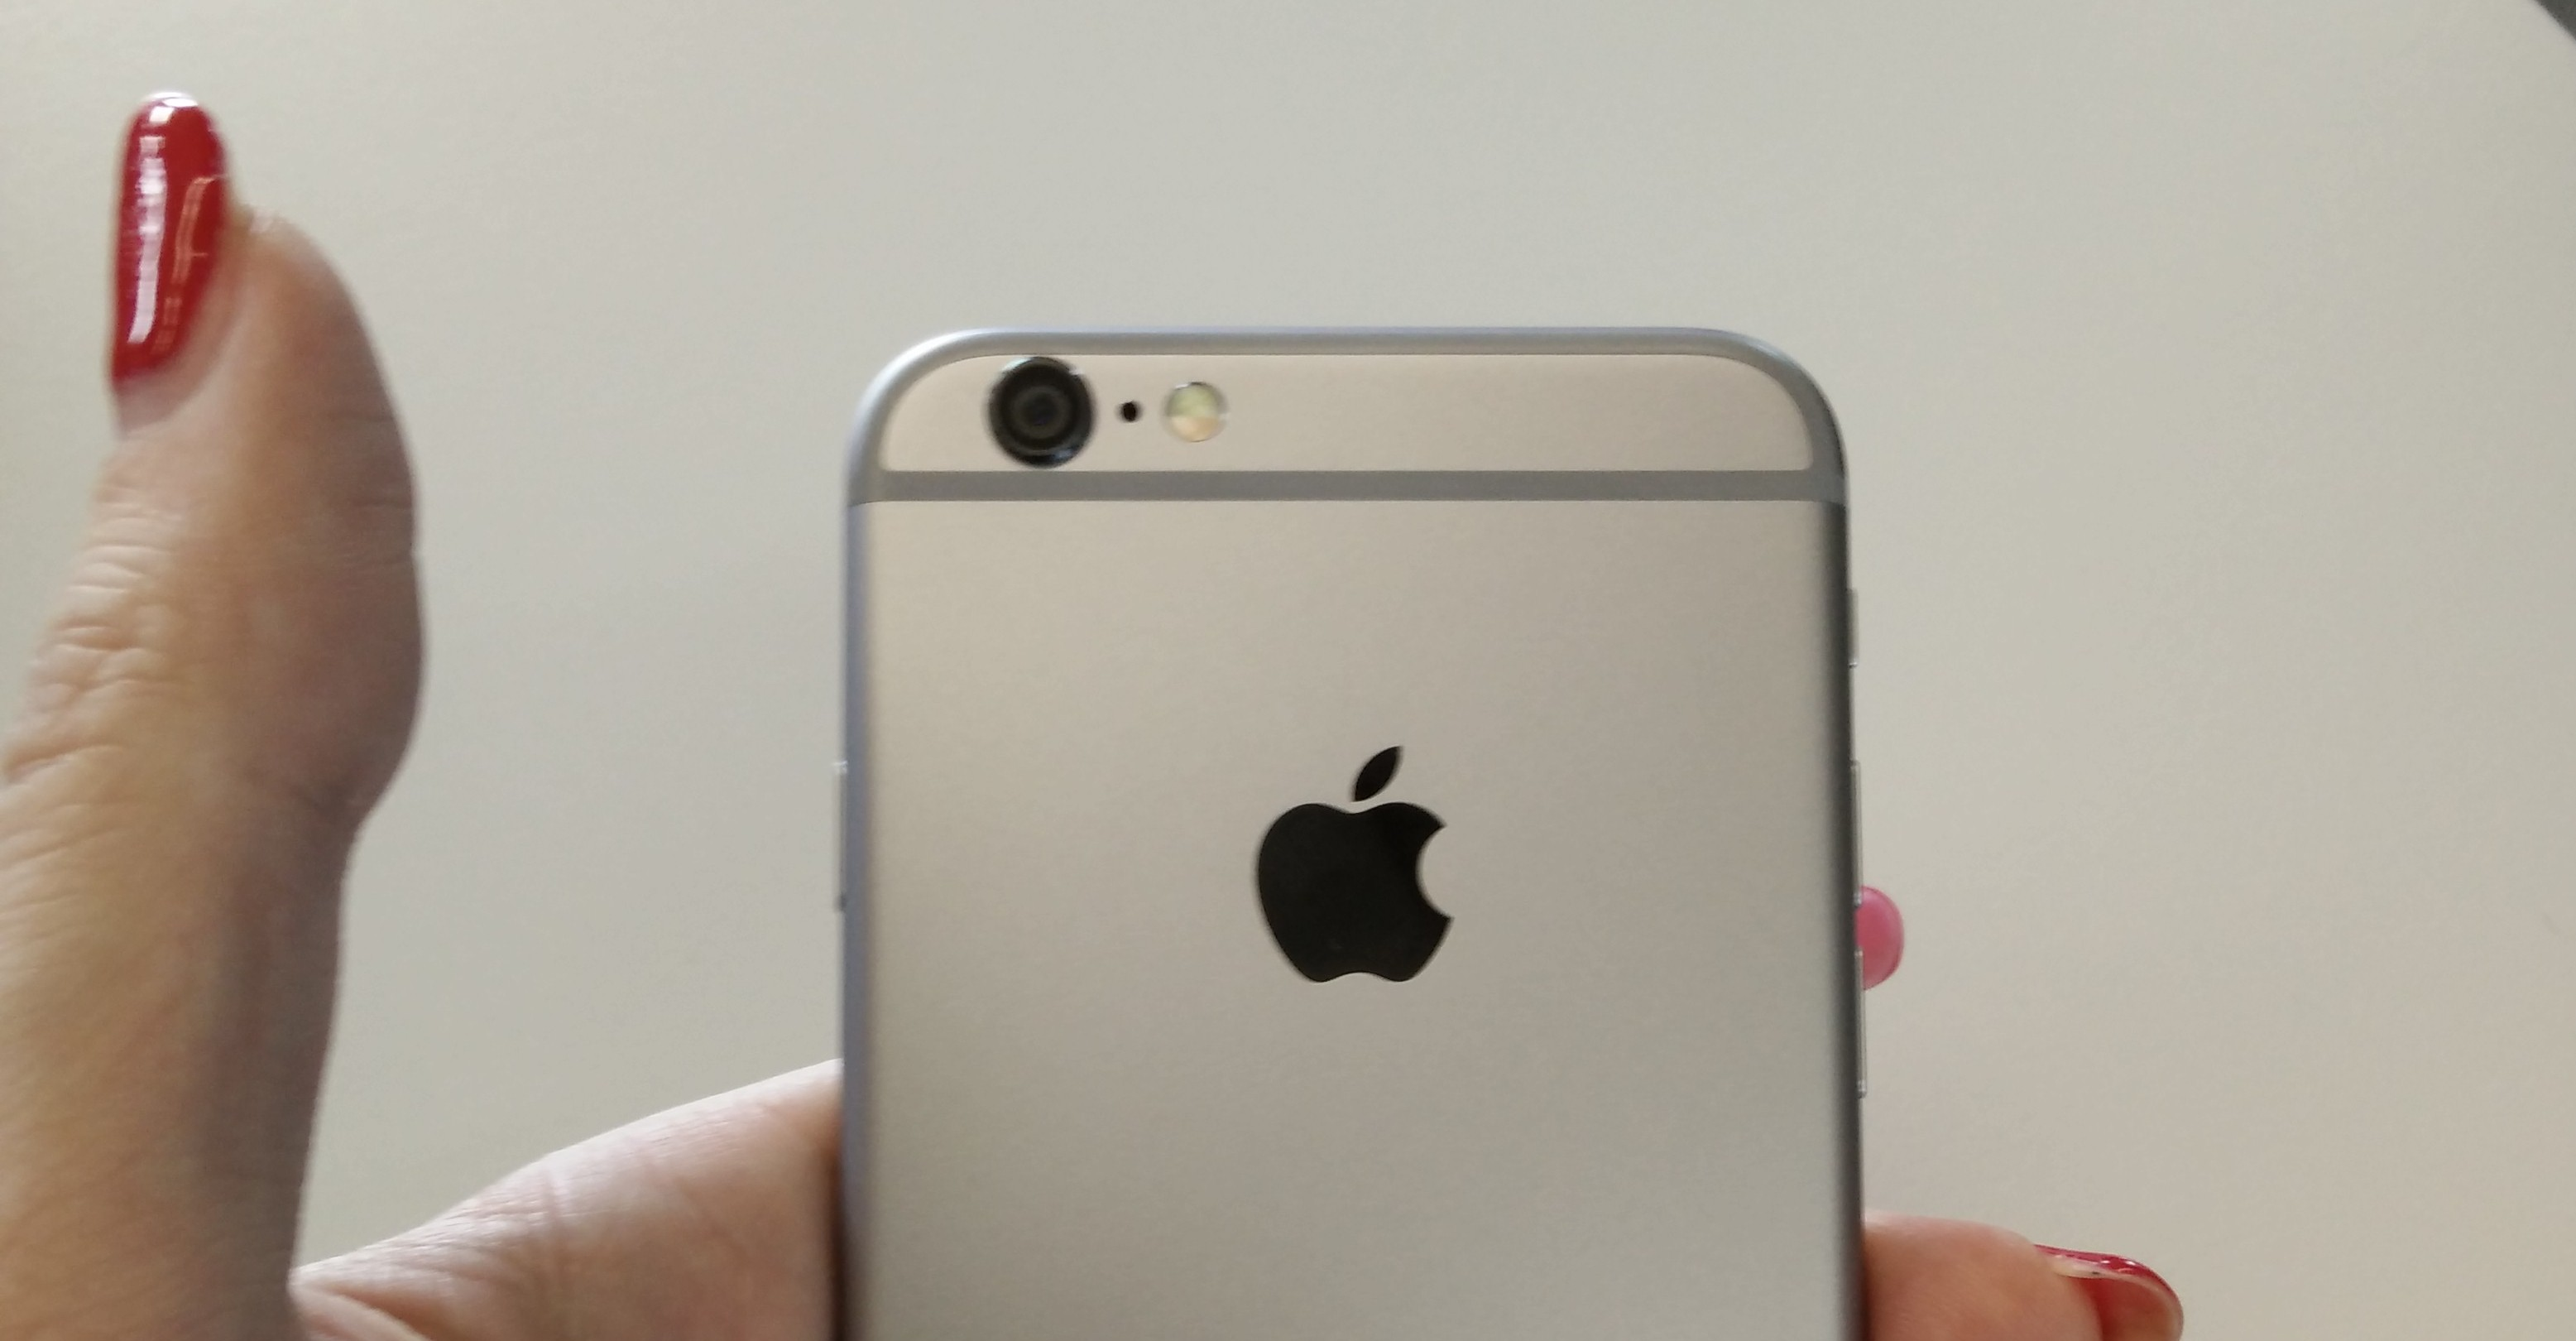 A short Hands-on: iPhone 6